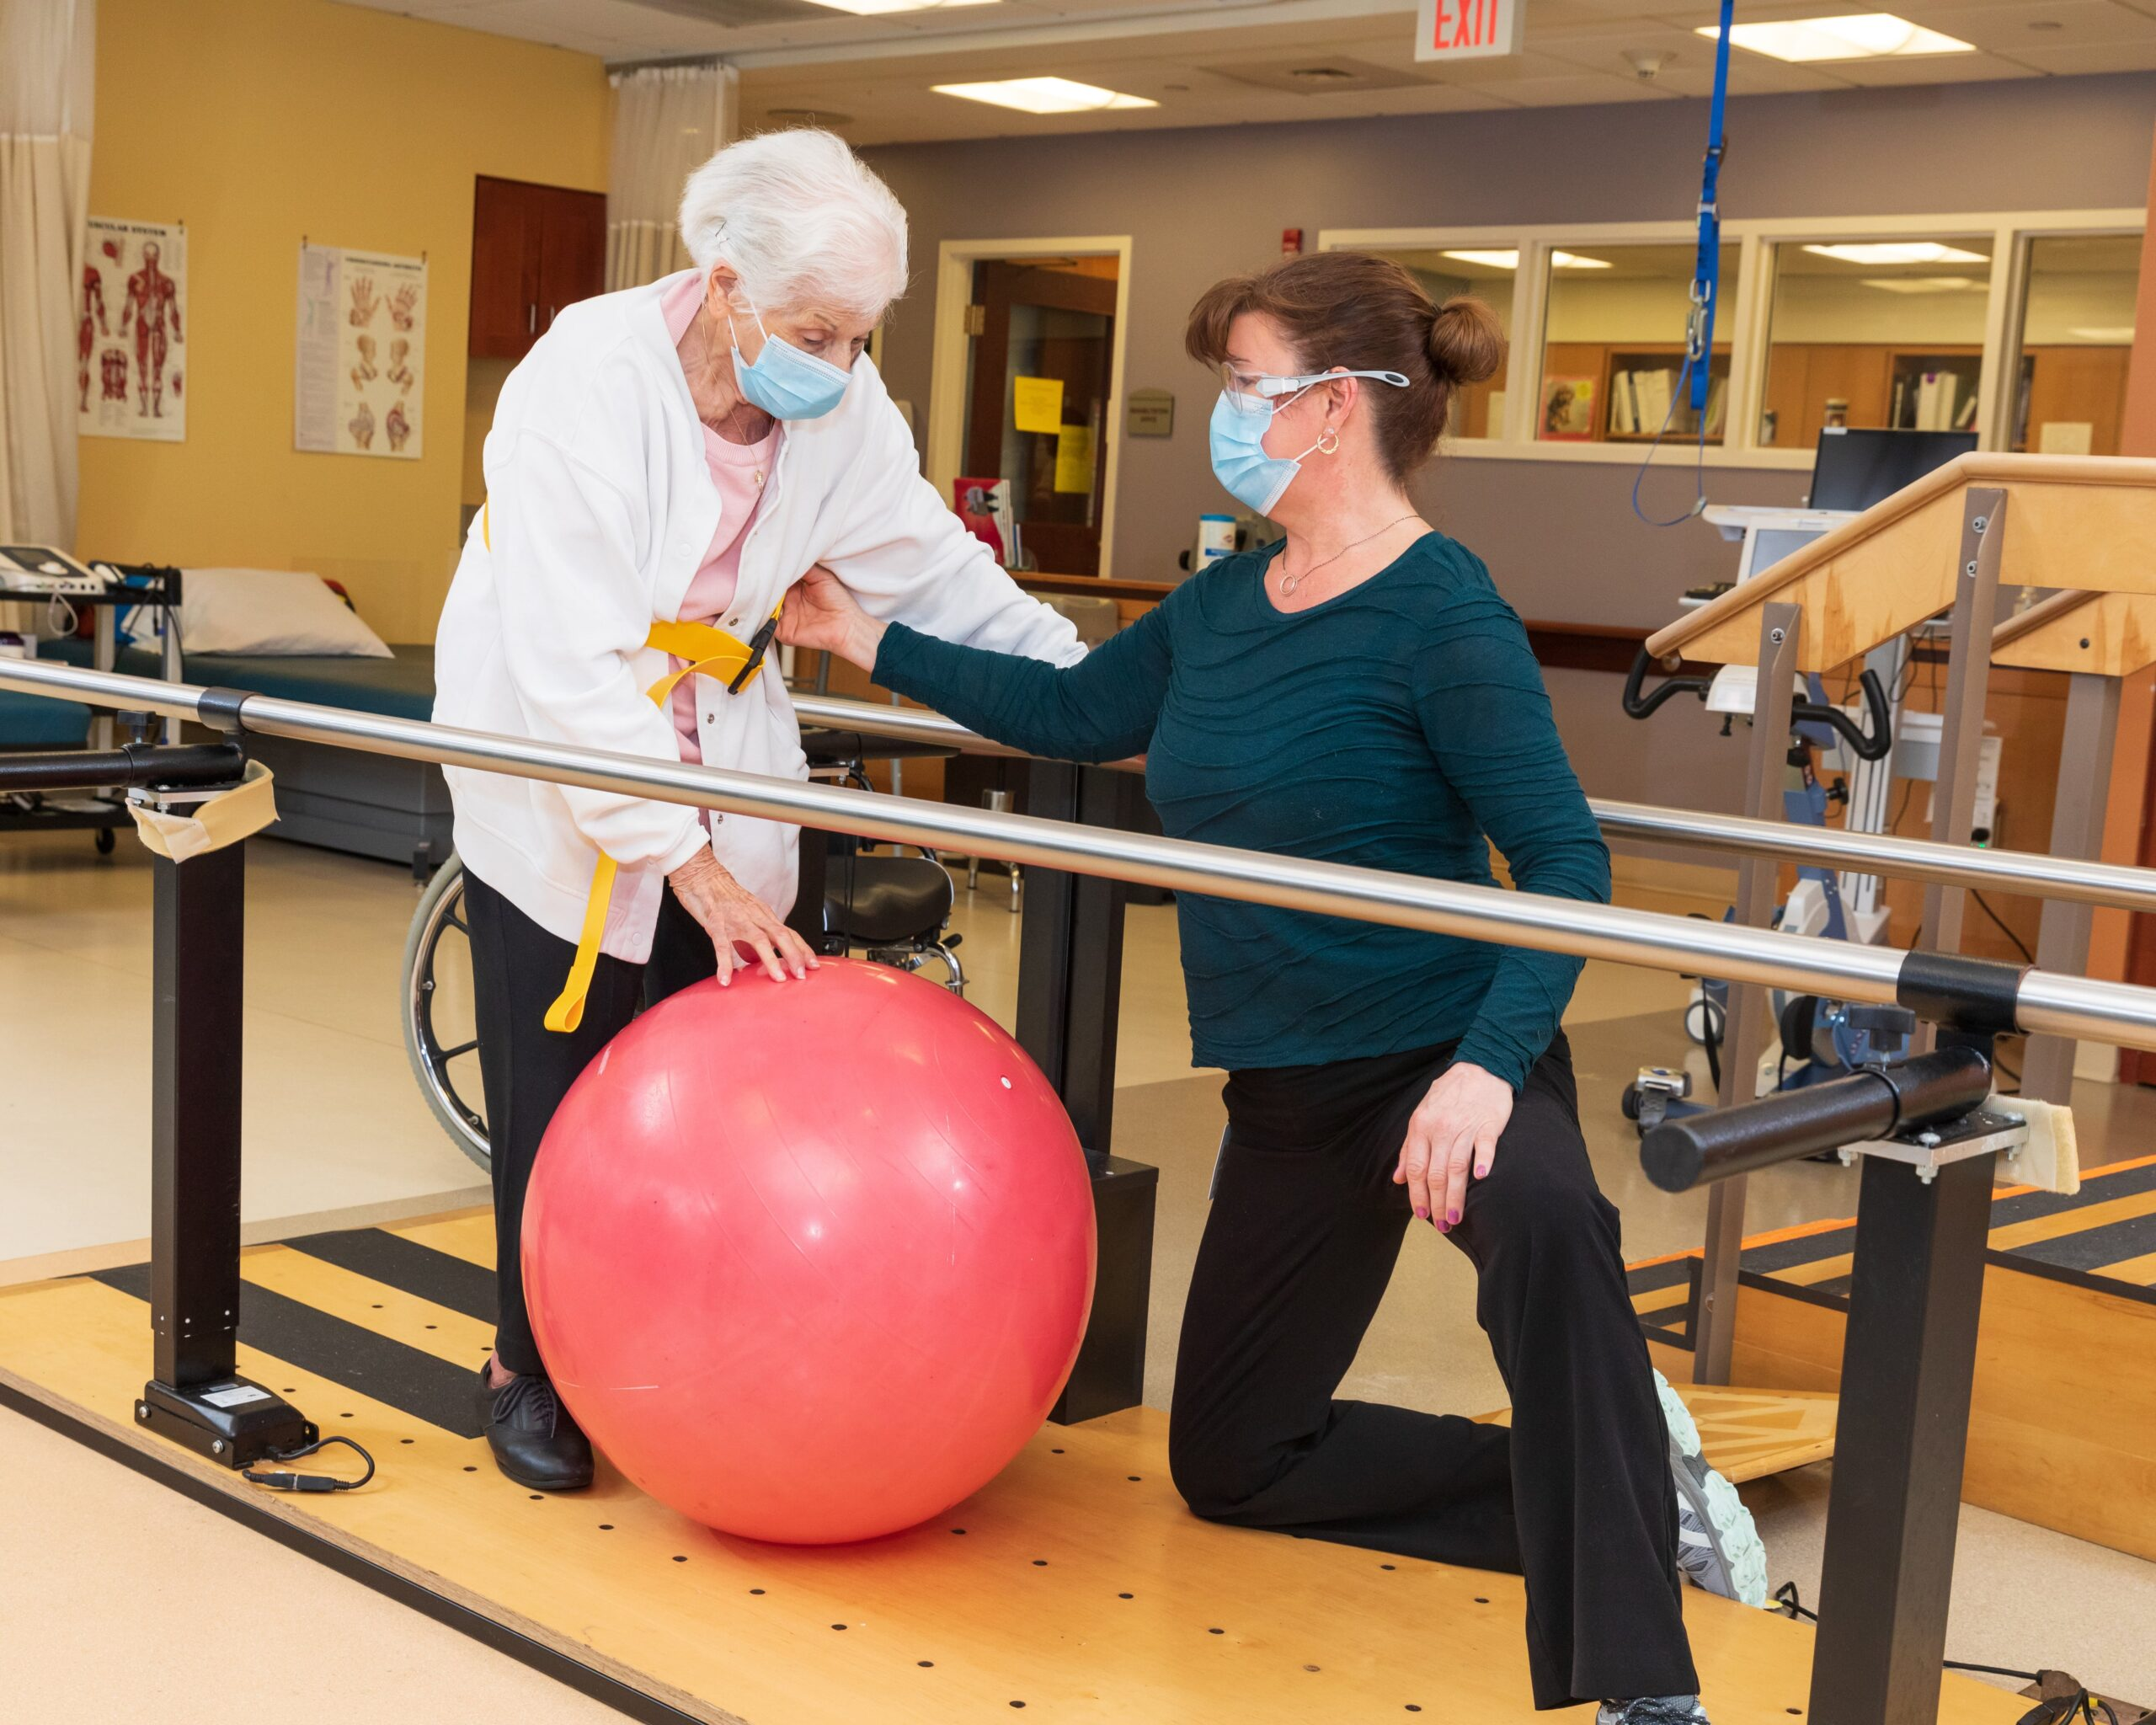 WELCOME TO MARY ANN MORSE OUTPATIENT REHAB